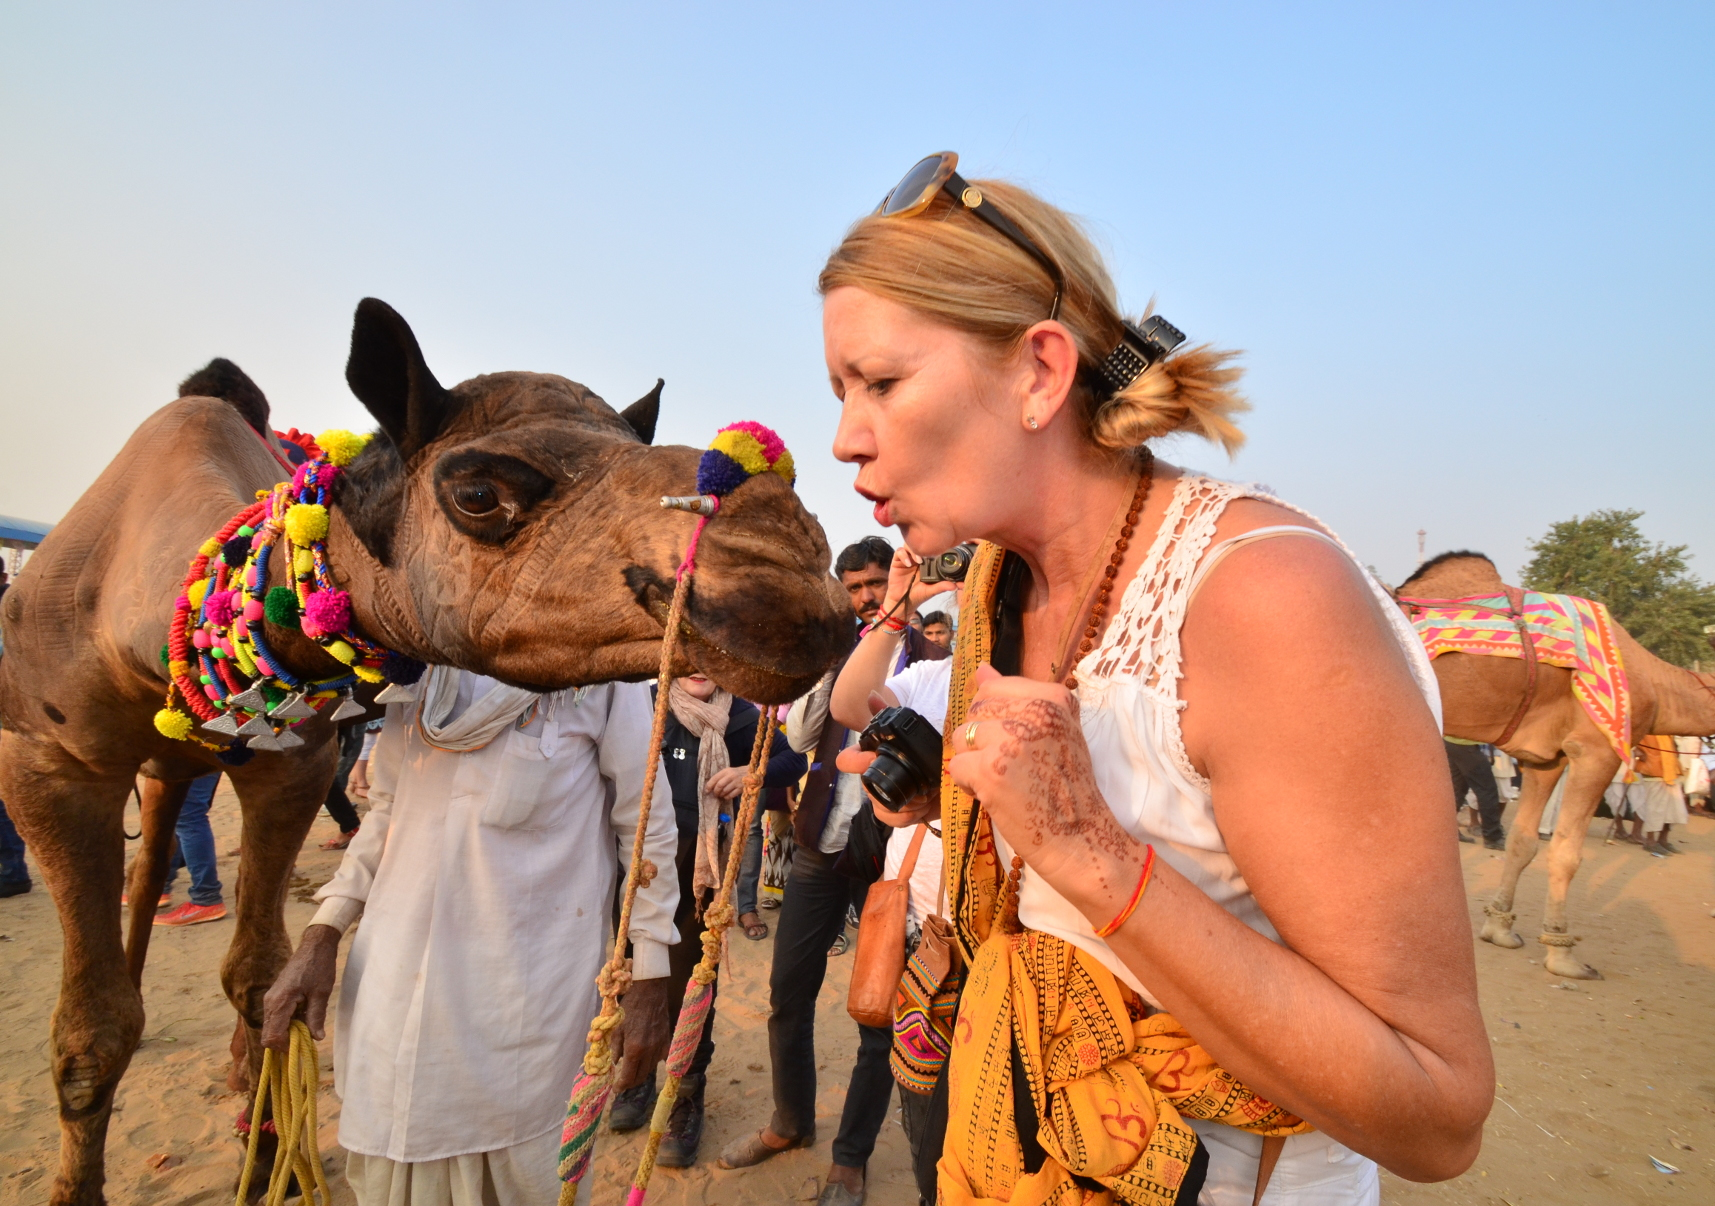 Every year Camel festival is celebrated with much fan fare  and a number of foreign tourists gather to  enjoy this festival. Suddenly I captured this funny picture.